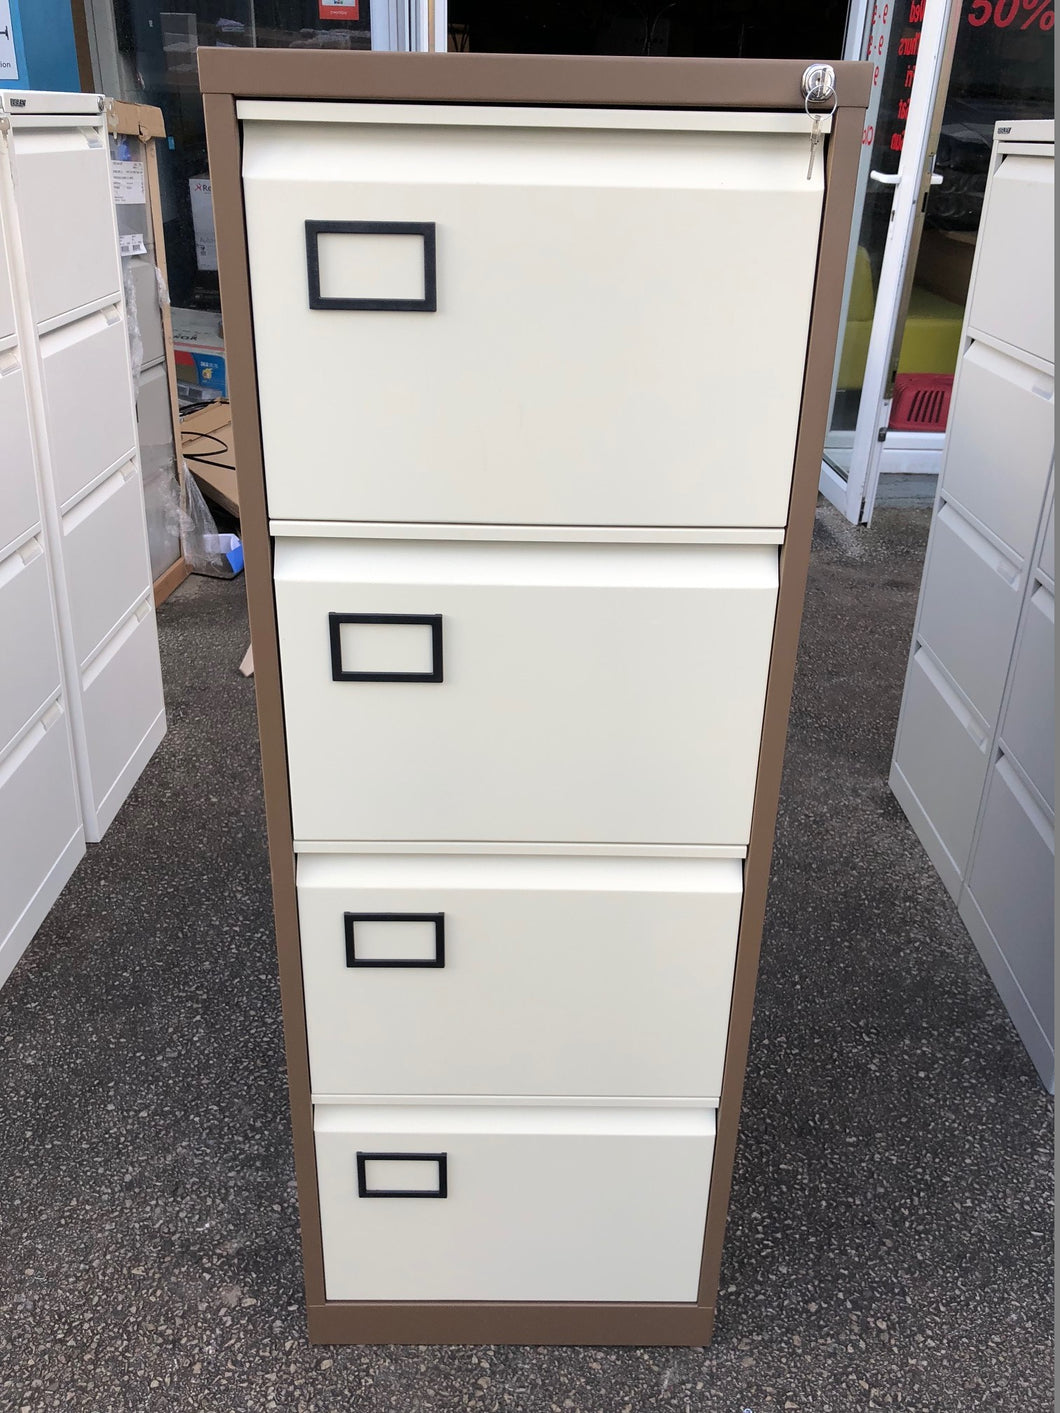 Trexus 4 Drawer Coffee And Cream Filing Cabinet - Flogit2us.com